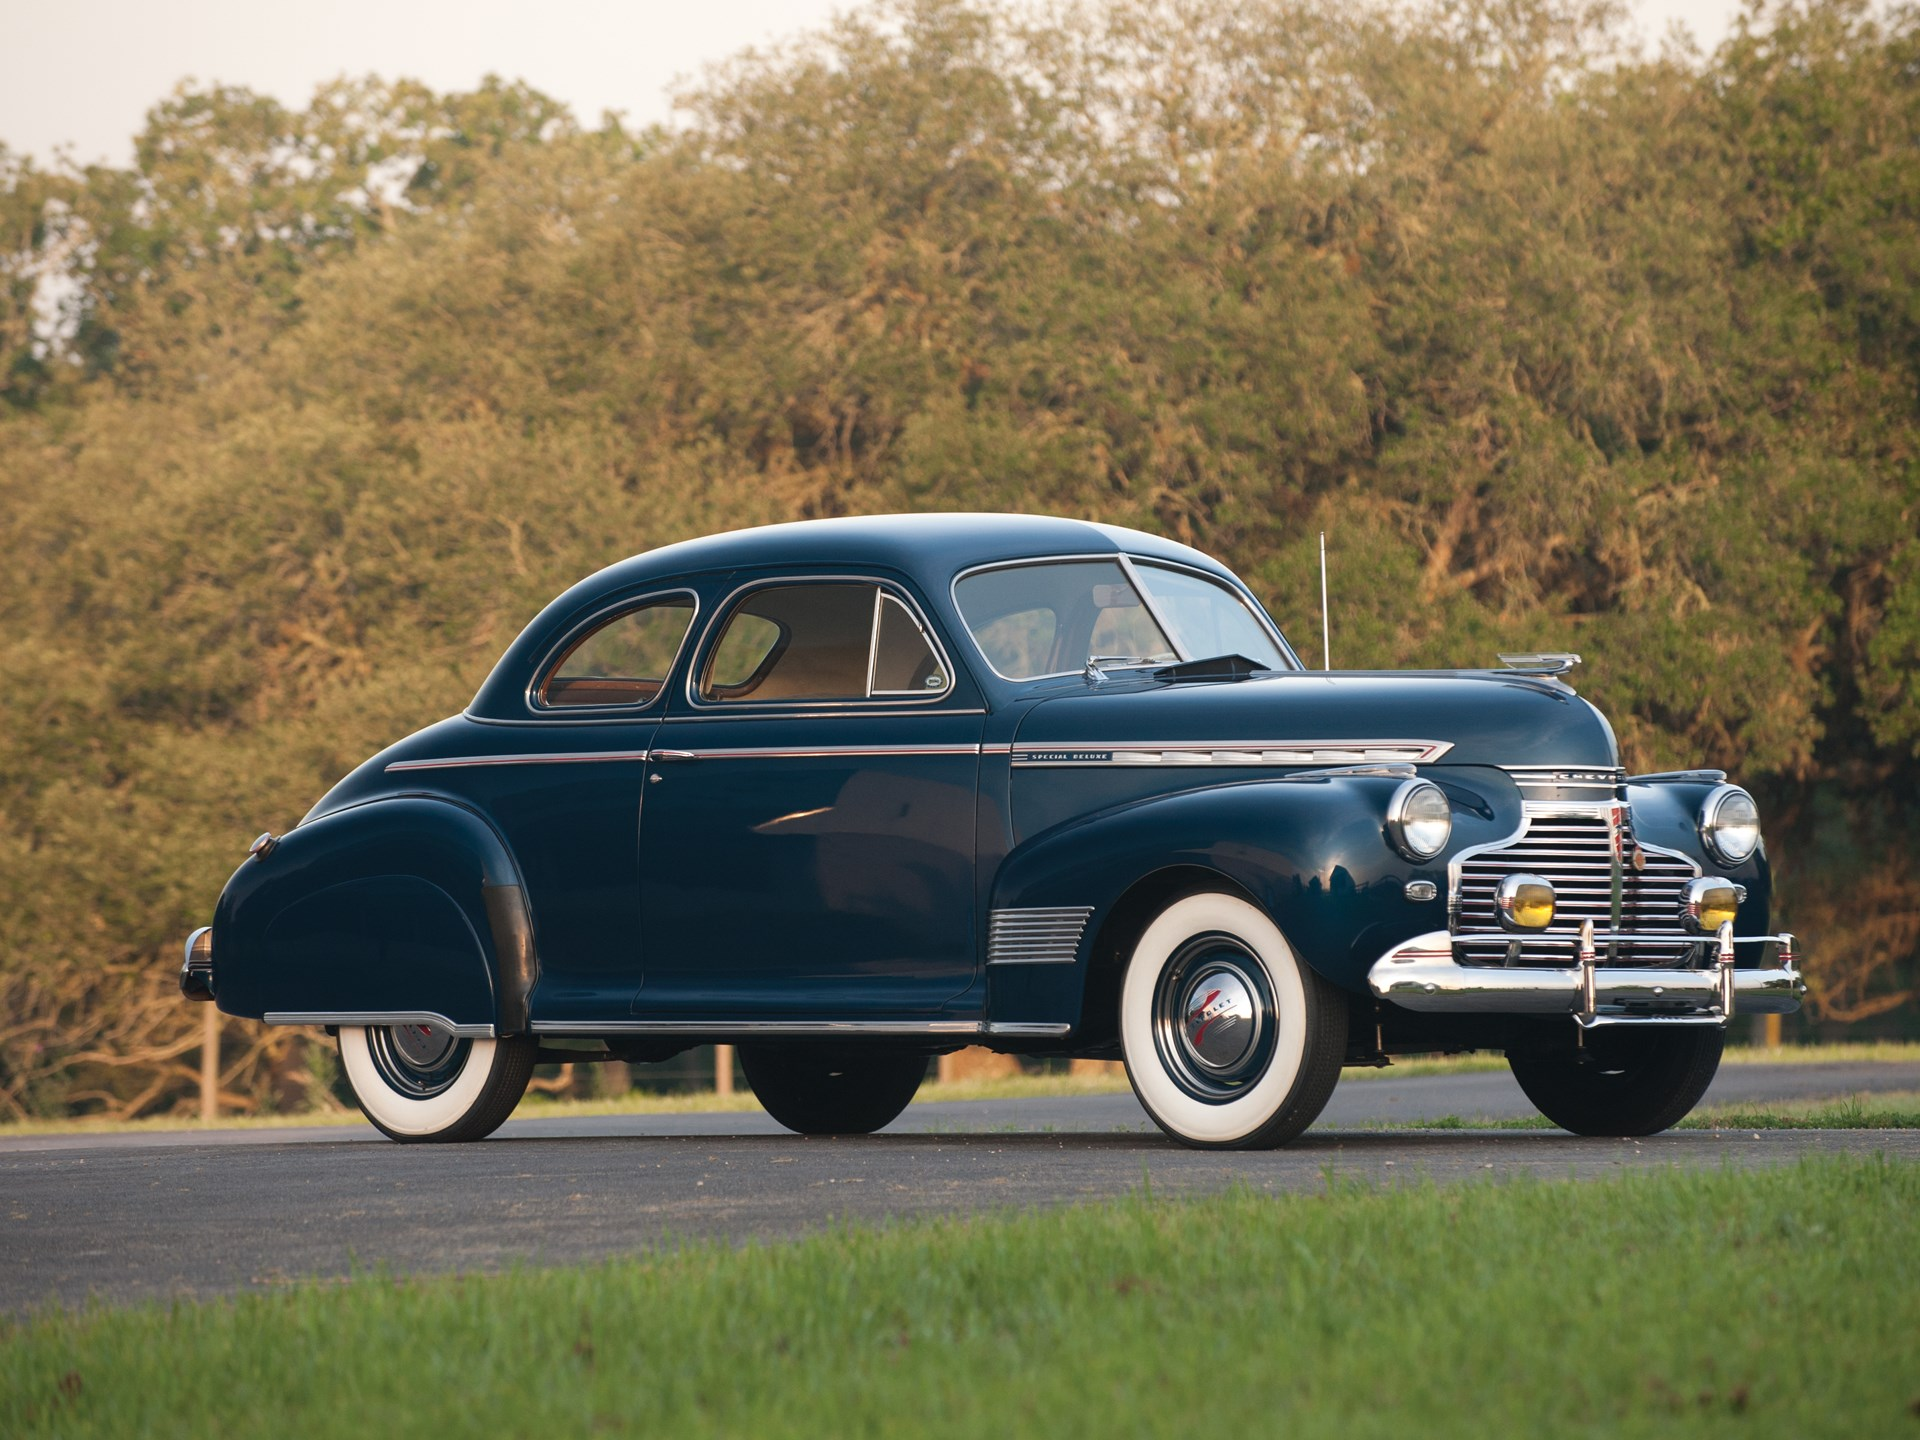 RM Sotheby's - 1941 Chevrolet Special DeLuxe Club Coupe | The